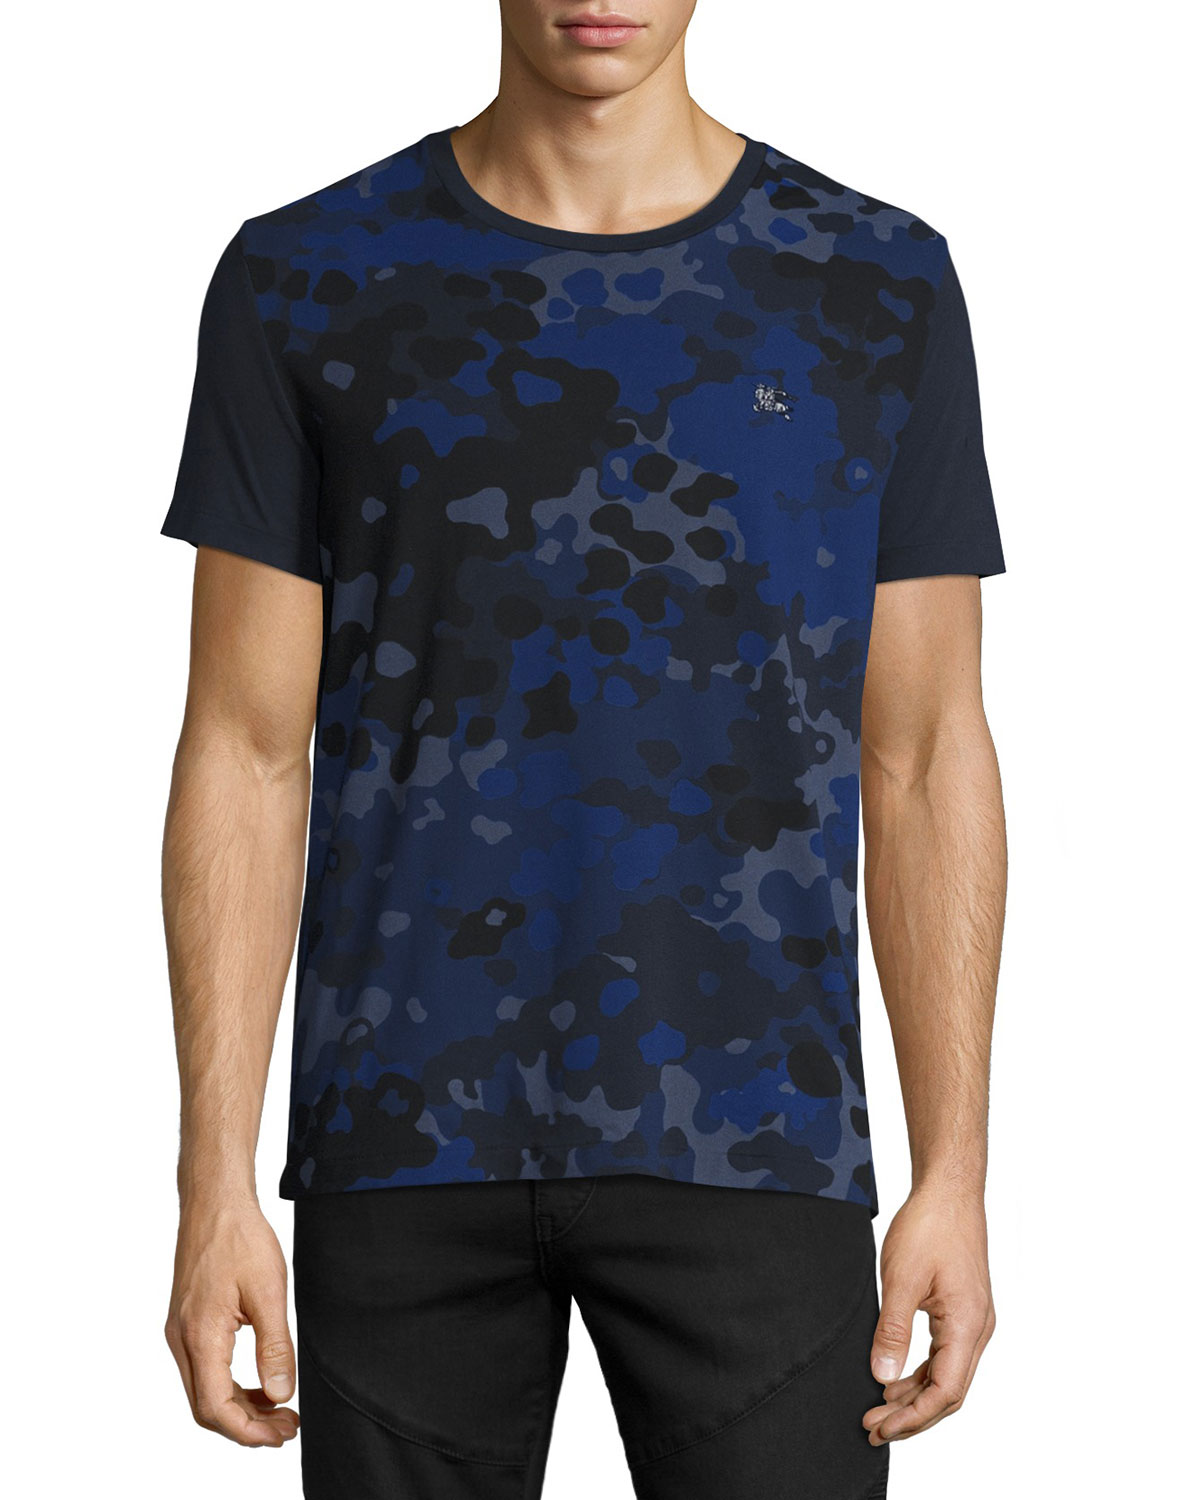 NAVY ALLOVER CAMO PRNT S/S T